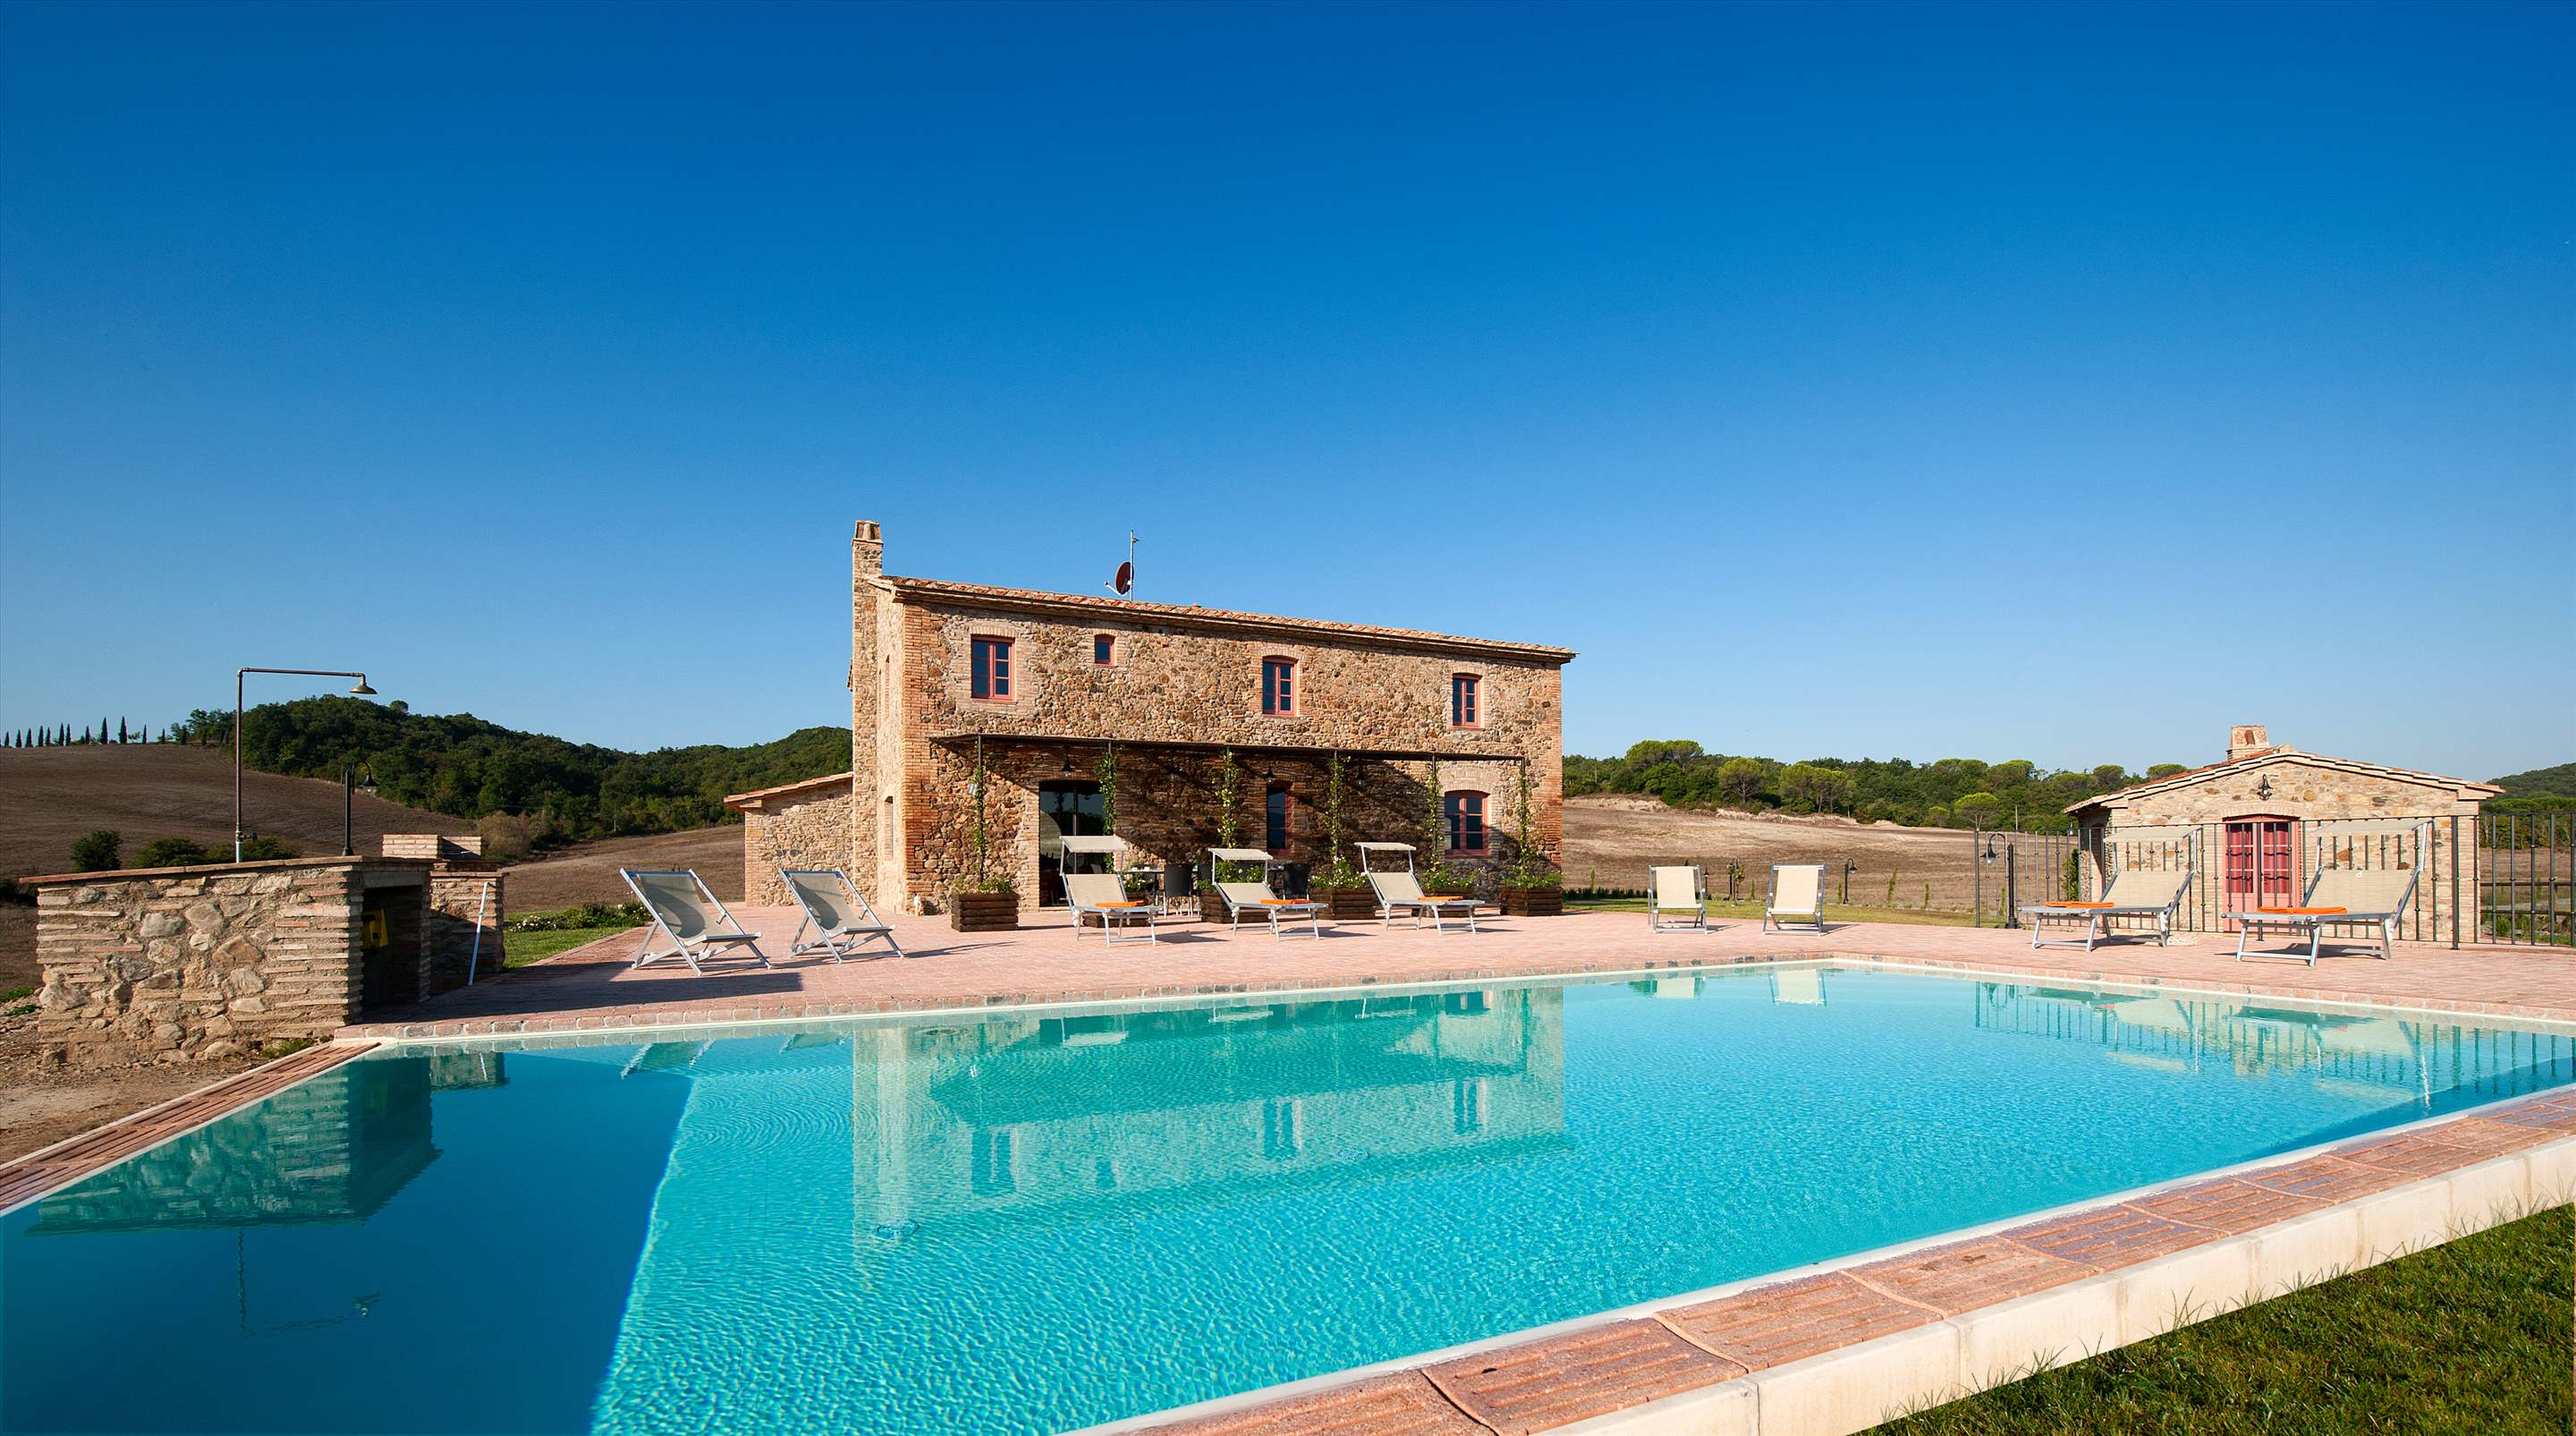 Podere I Gotti, 5 bedroom villa in Tuscany Coast, Tuscany